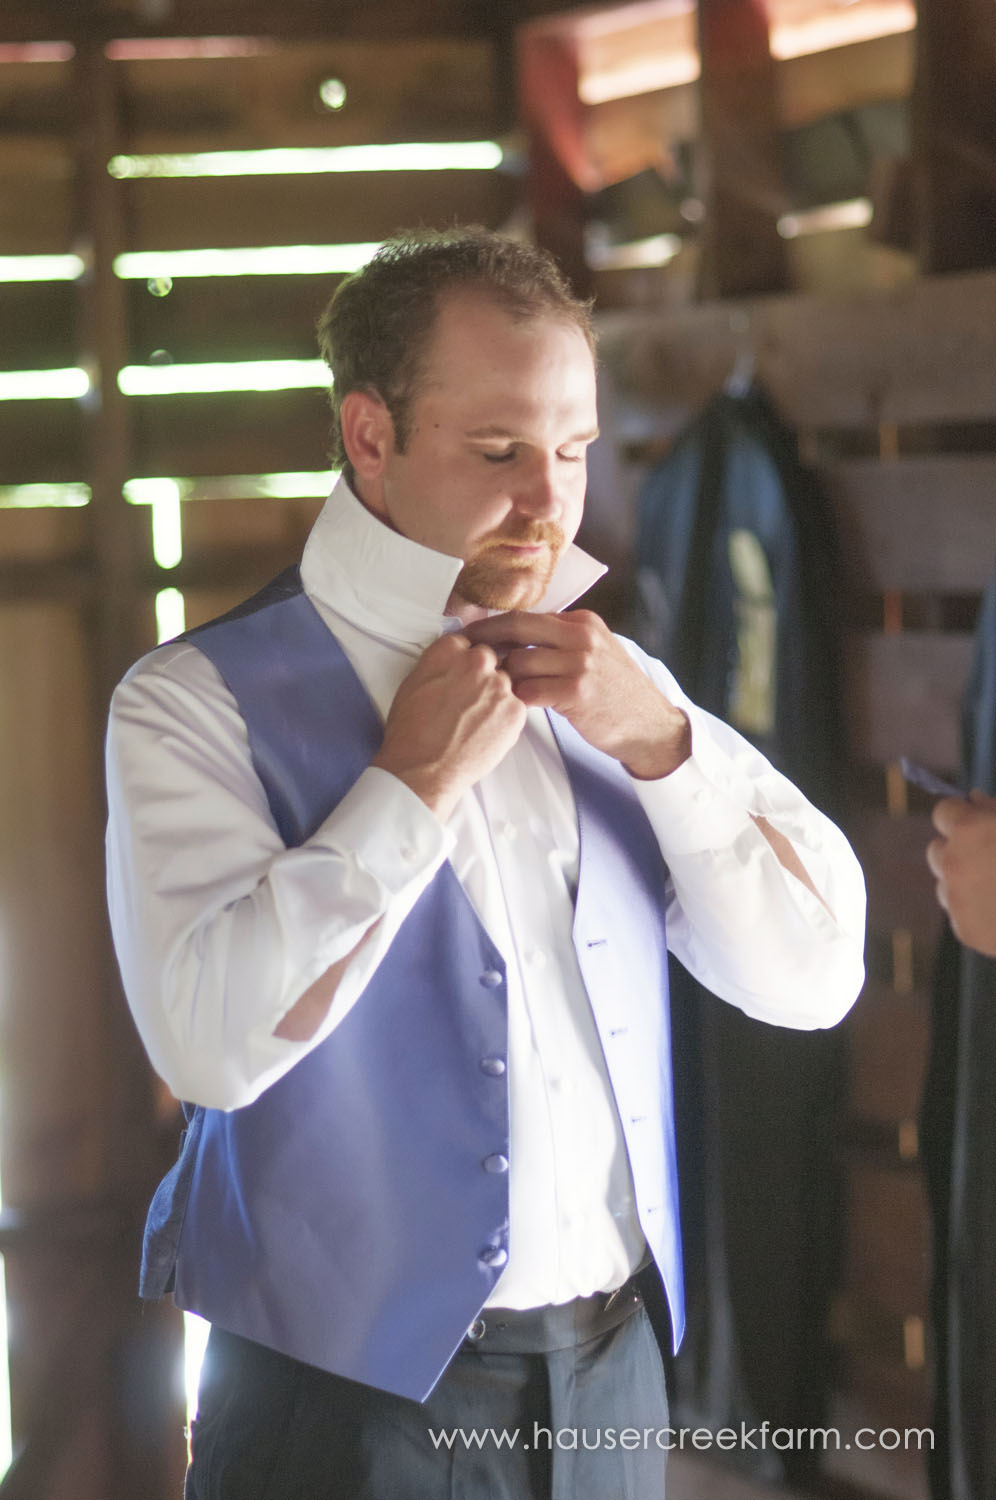 groom-dressing-for-farm-wedding-a-photo-by-ashley-0310.jpg